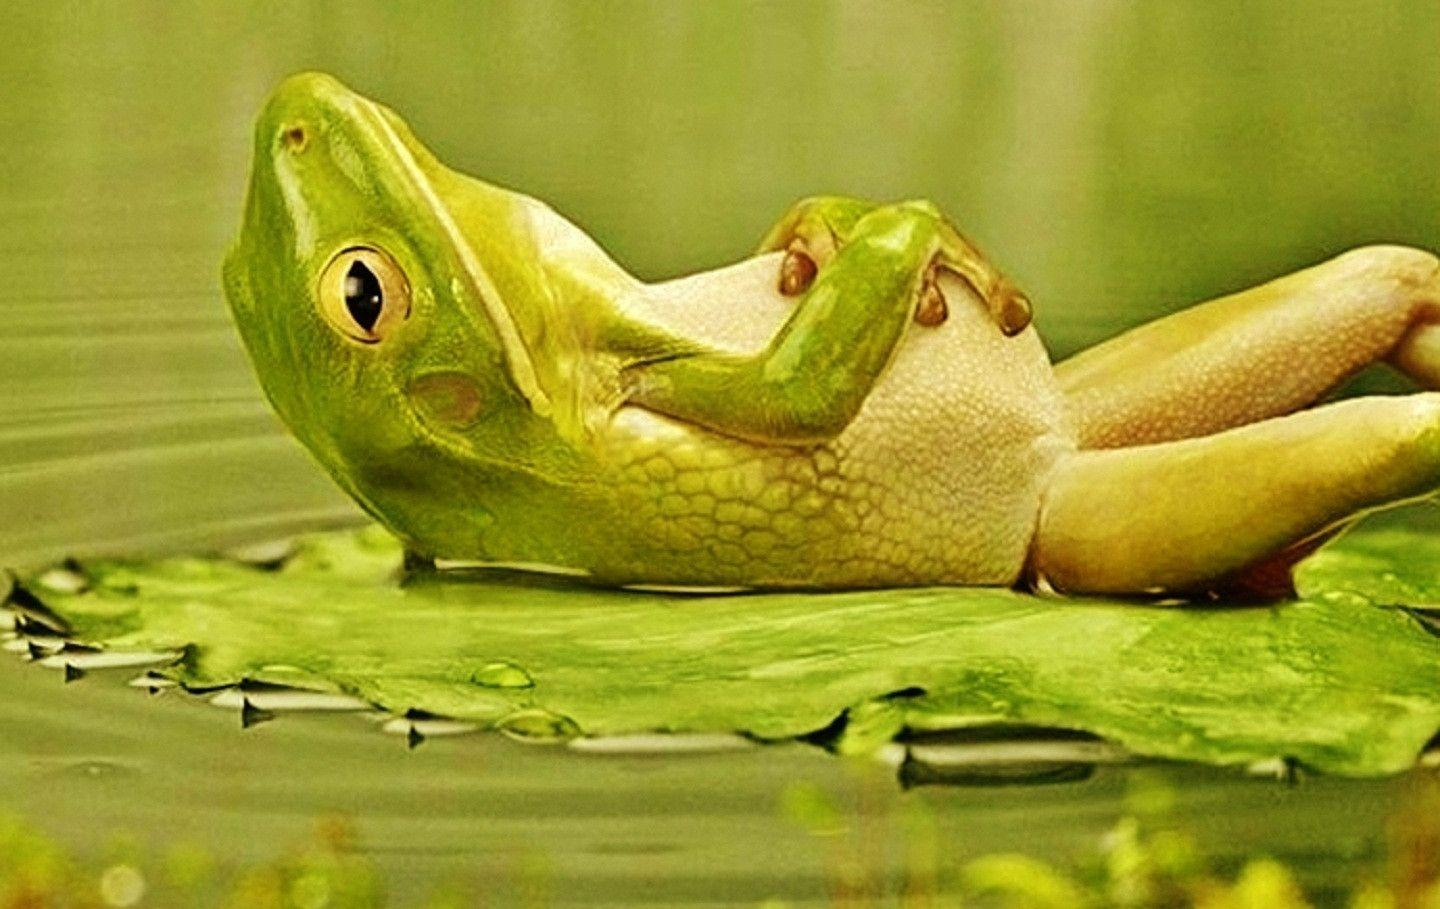 75 Hd Animals Ipad Backgrounds: Funny Frog Wallpapers